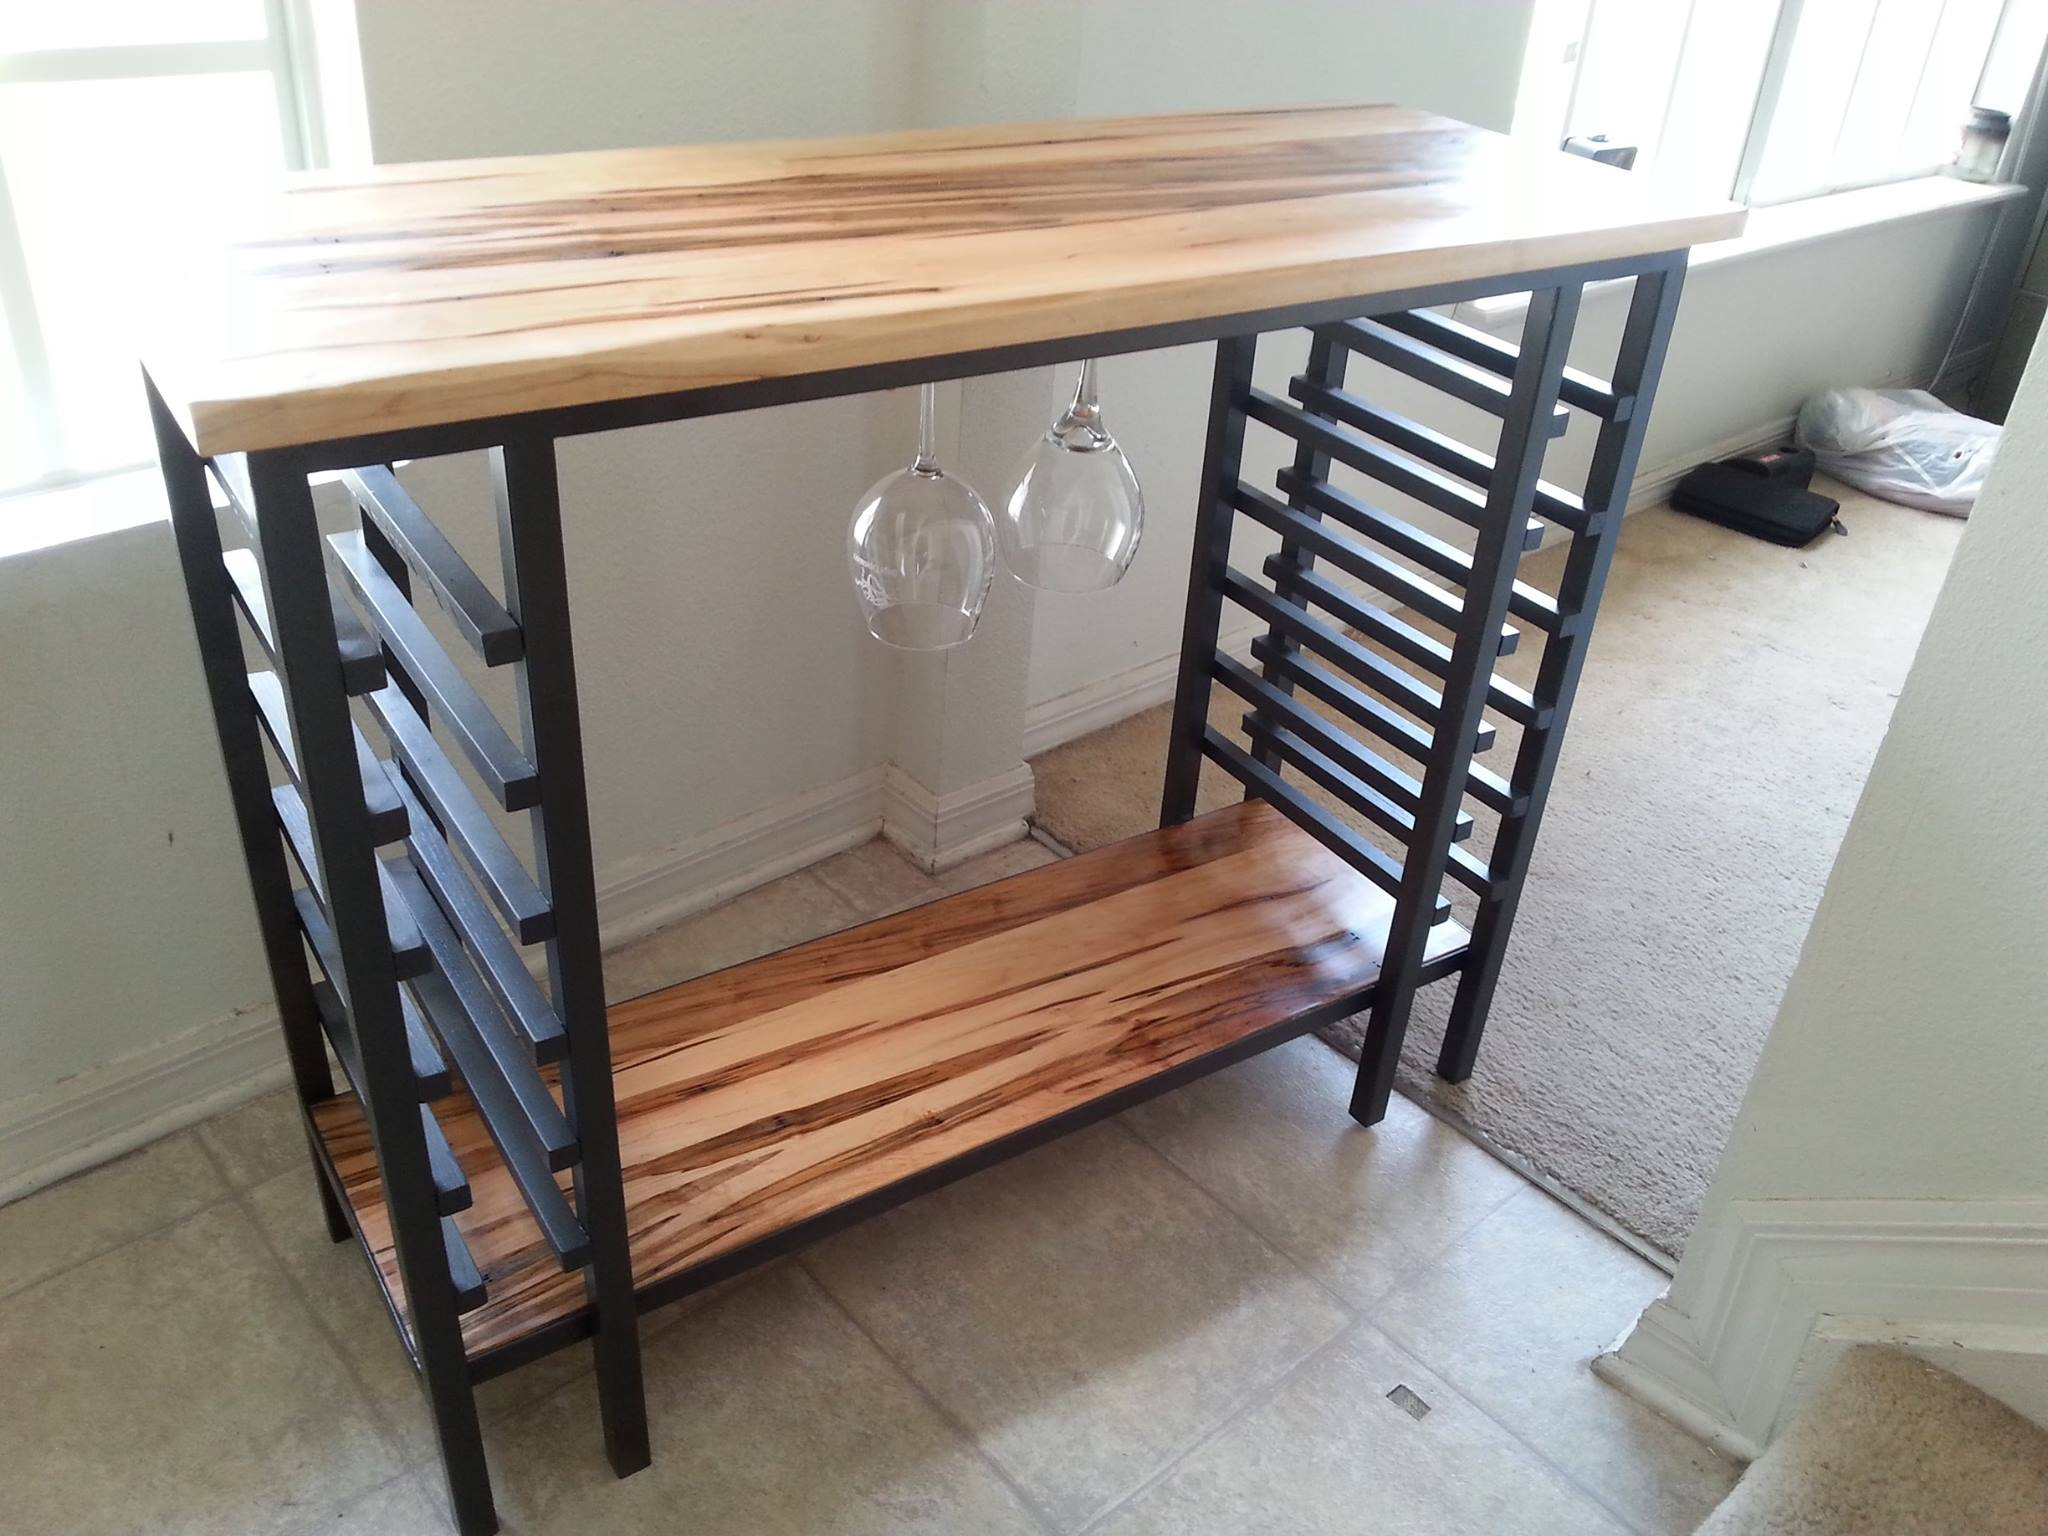 From Nick Lyman: It is a custom wine rack made as a wedding gift for my sister.  The frame is welded steel and the surfaces are Ambrosia Maple finished with true tung oil.  It holds 12 wine glasses in hangers and 12 wine bottles in the vertical racks.